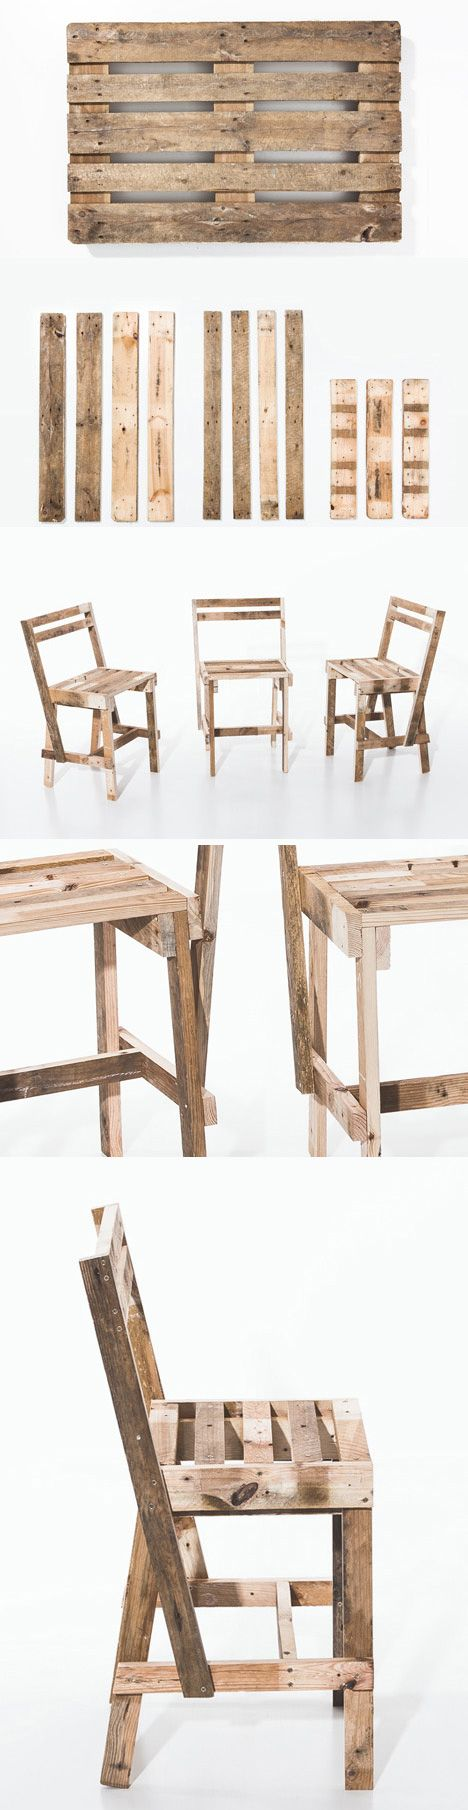 From Shipping to Seating: Balzer + Kuwertz's Upcycled Pallet Chairs